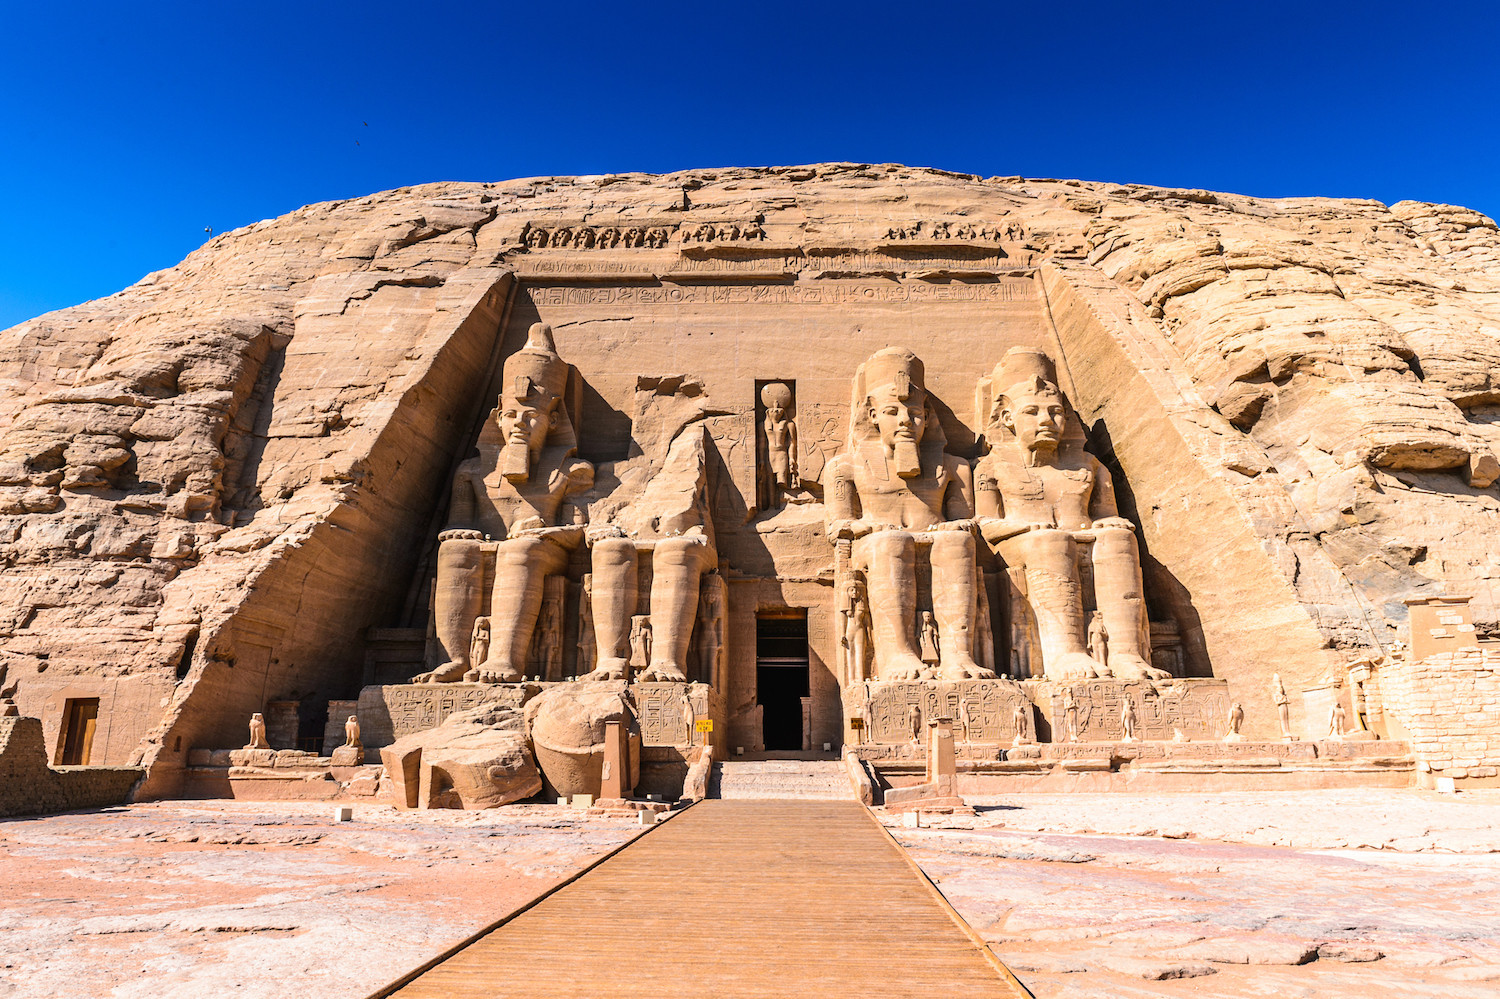 A salvage operation that inspired the world: Abu Simbel and the World Heritage